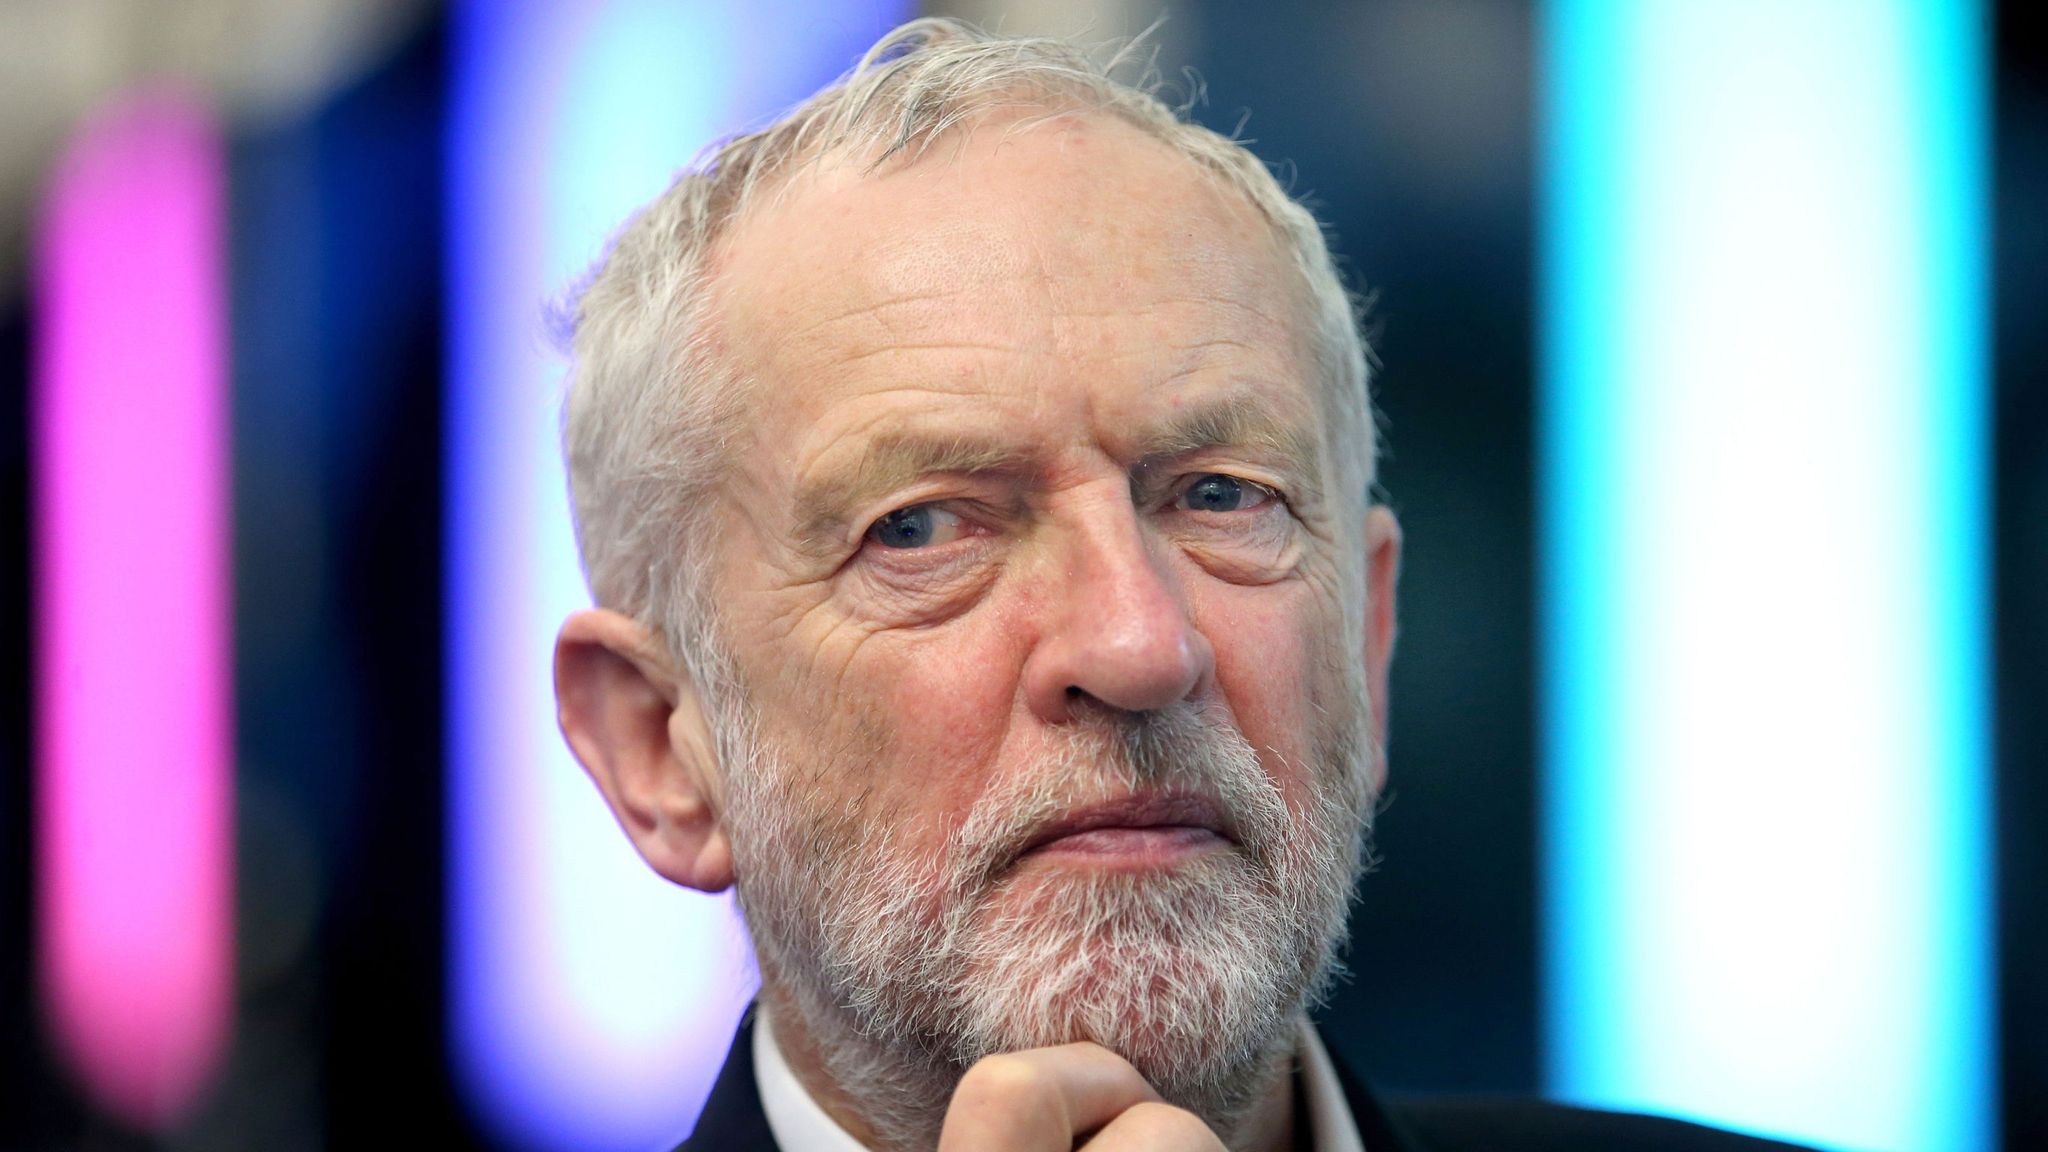 Jeremy Corbyn Infuriates House Of Commons With Russia Response